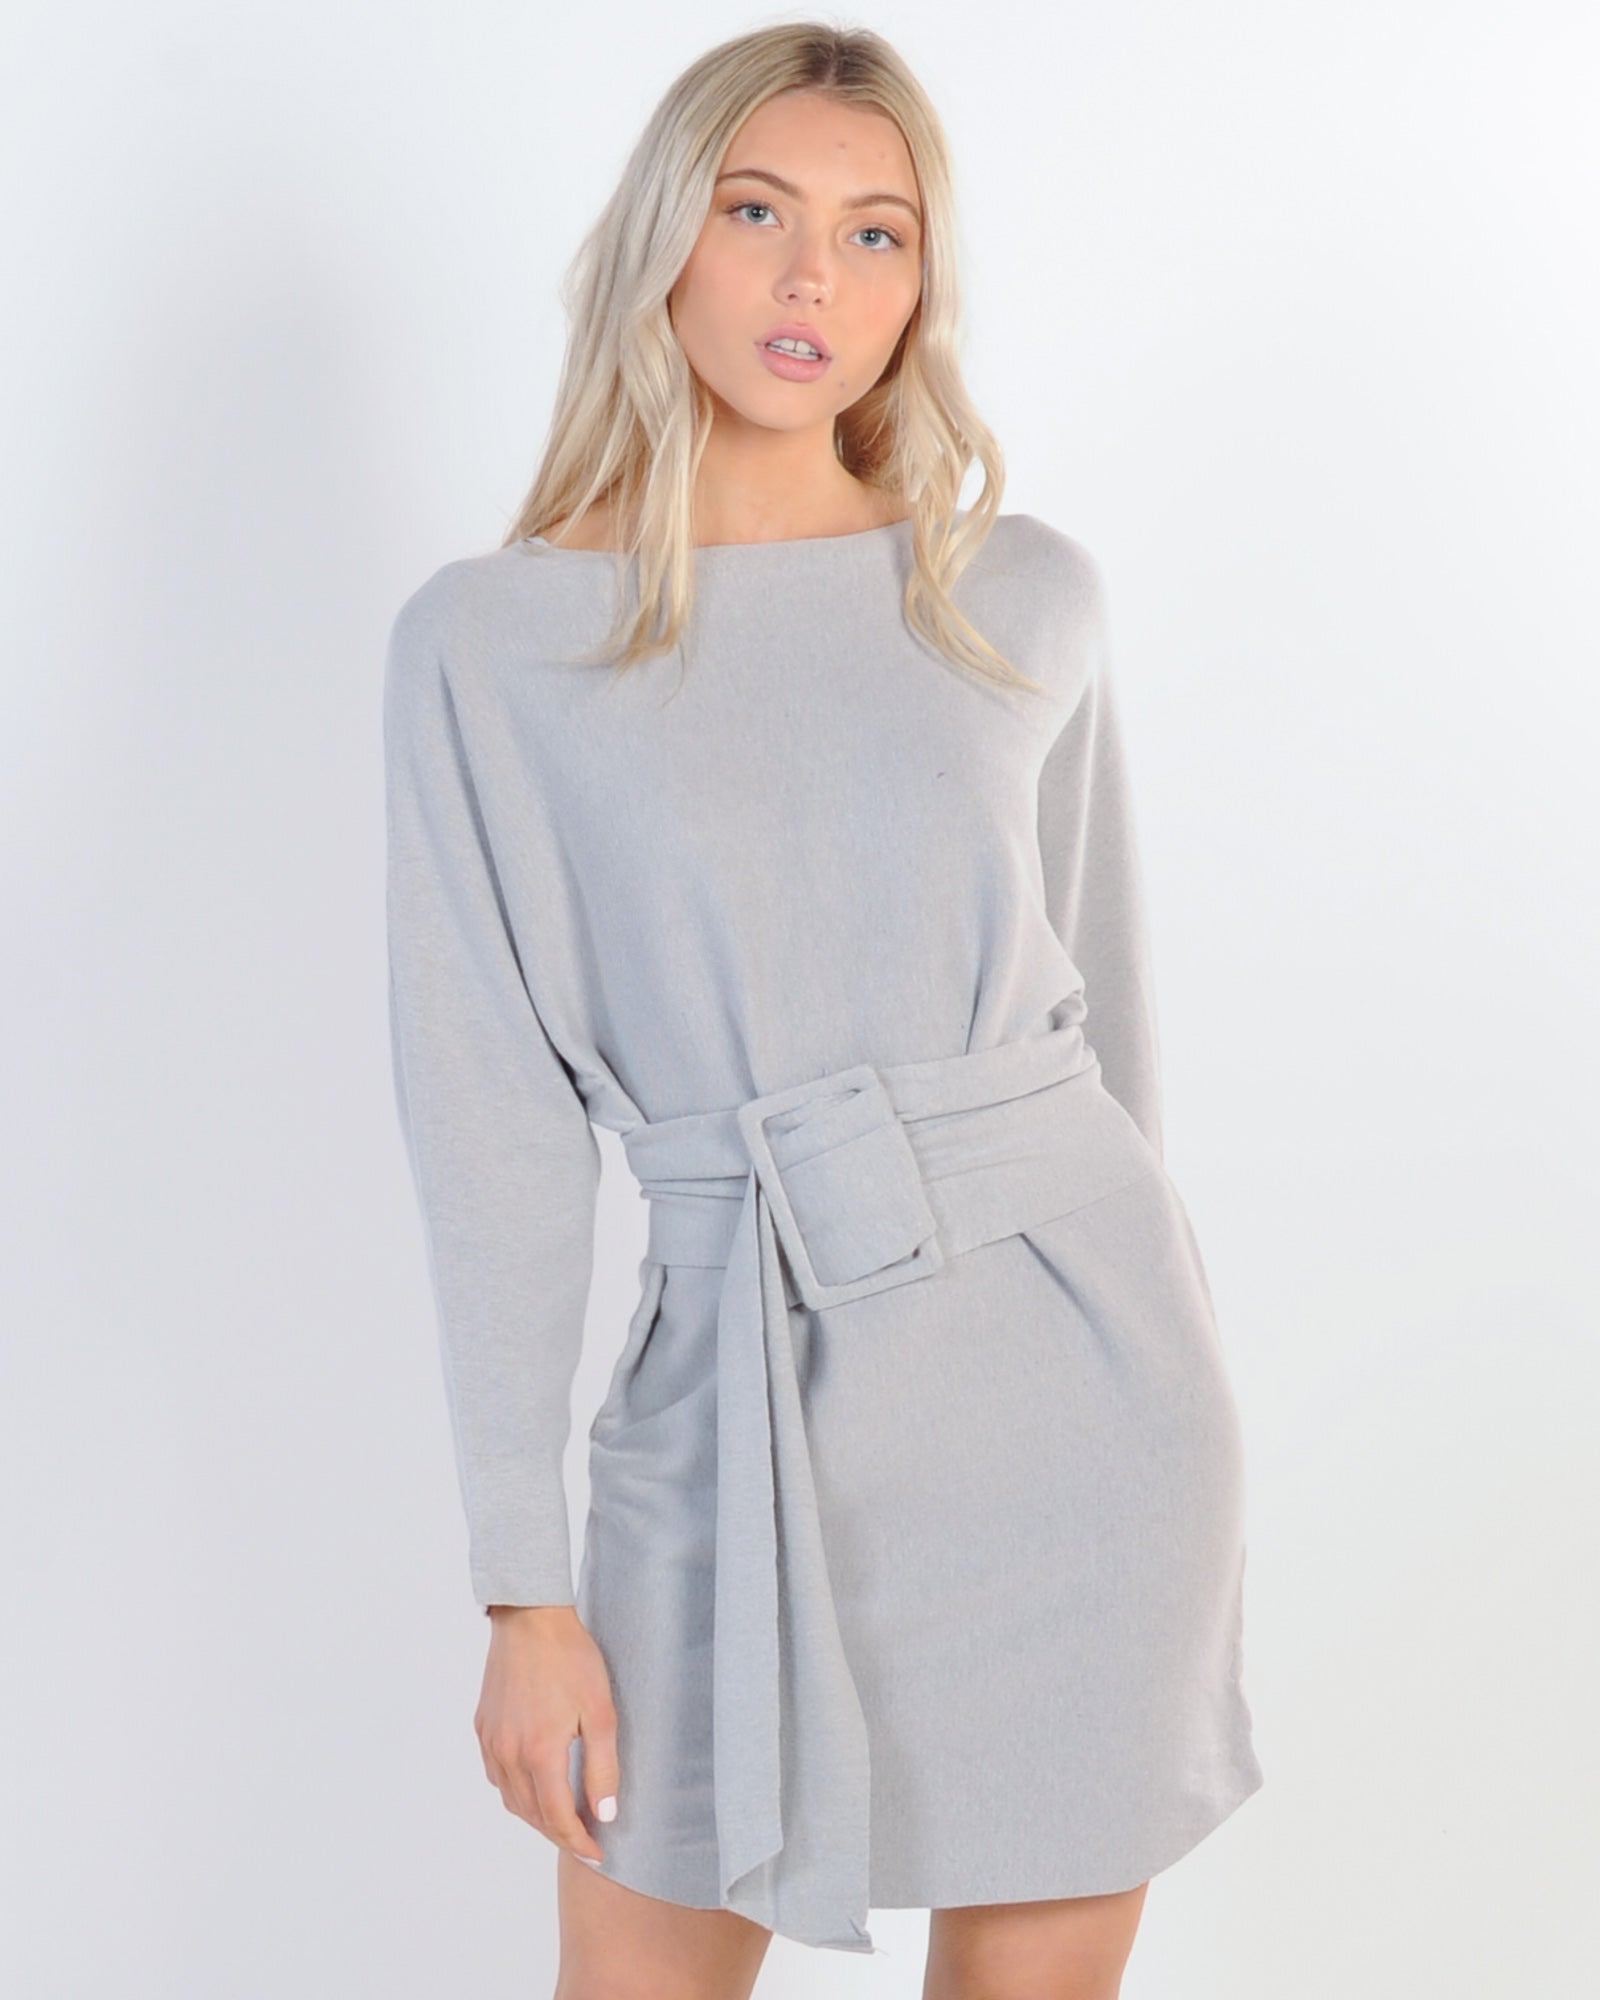 Keep It Simple Knit Dress - Grey